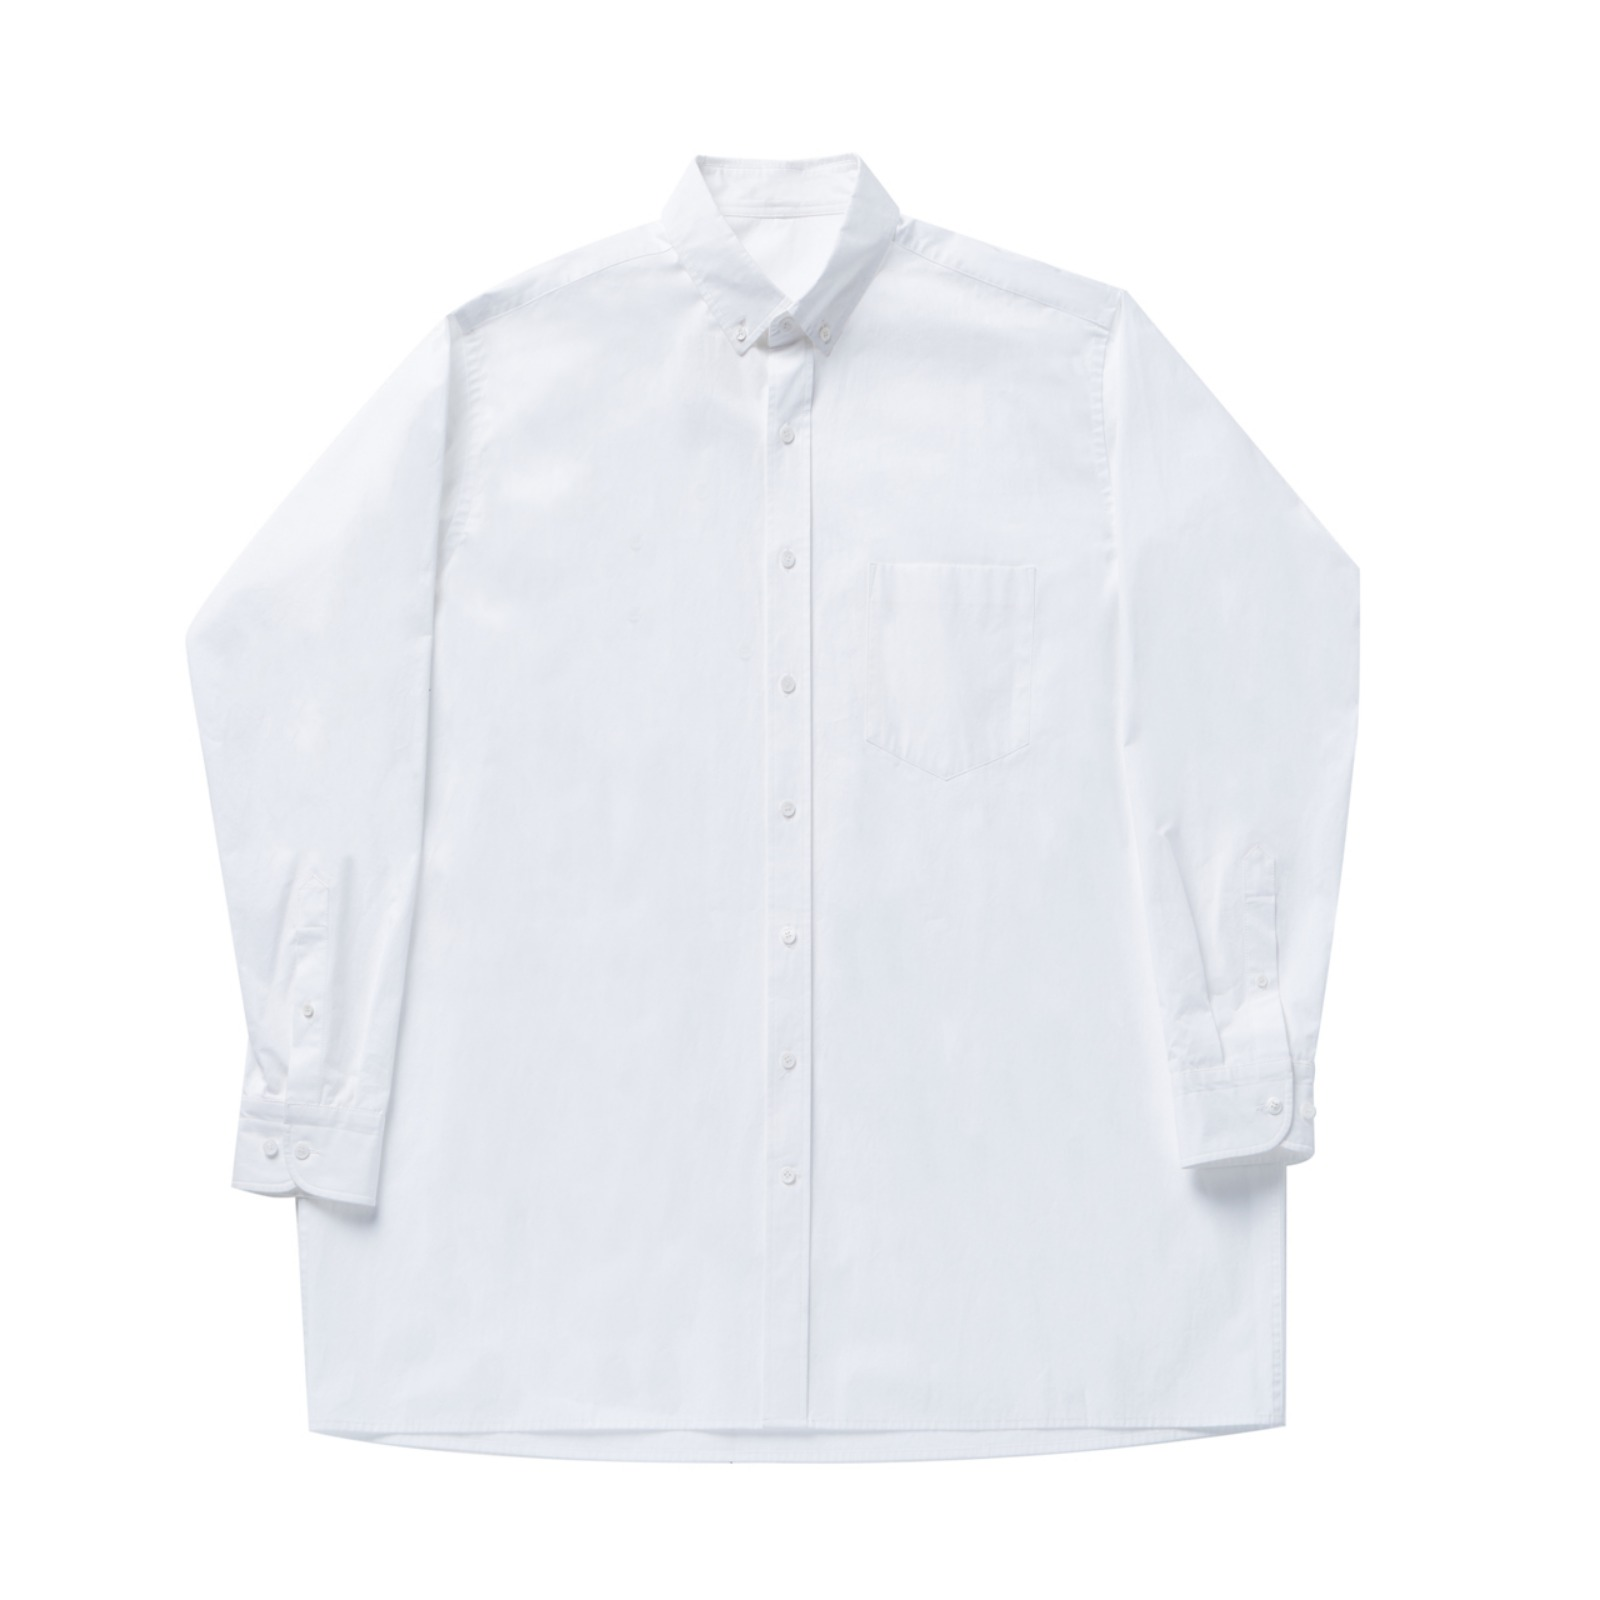 Long shirt 001 White(Unisex)